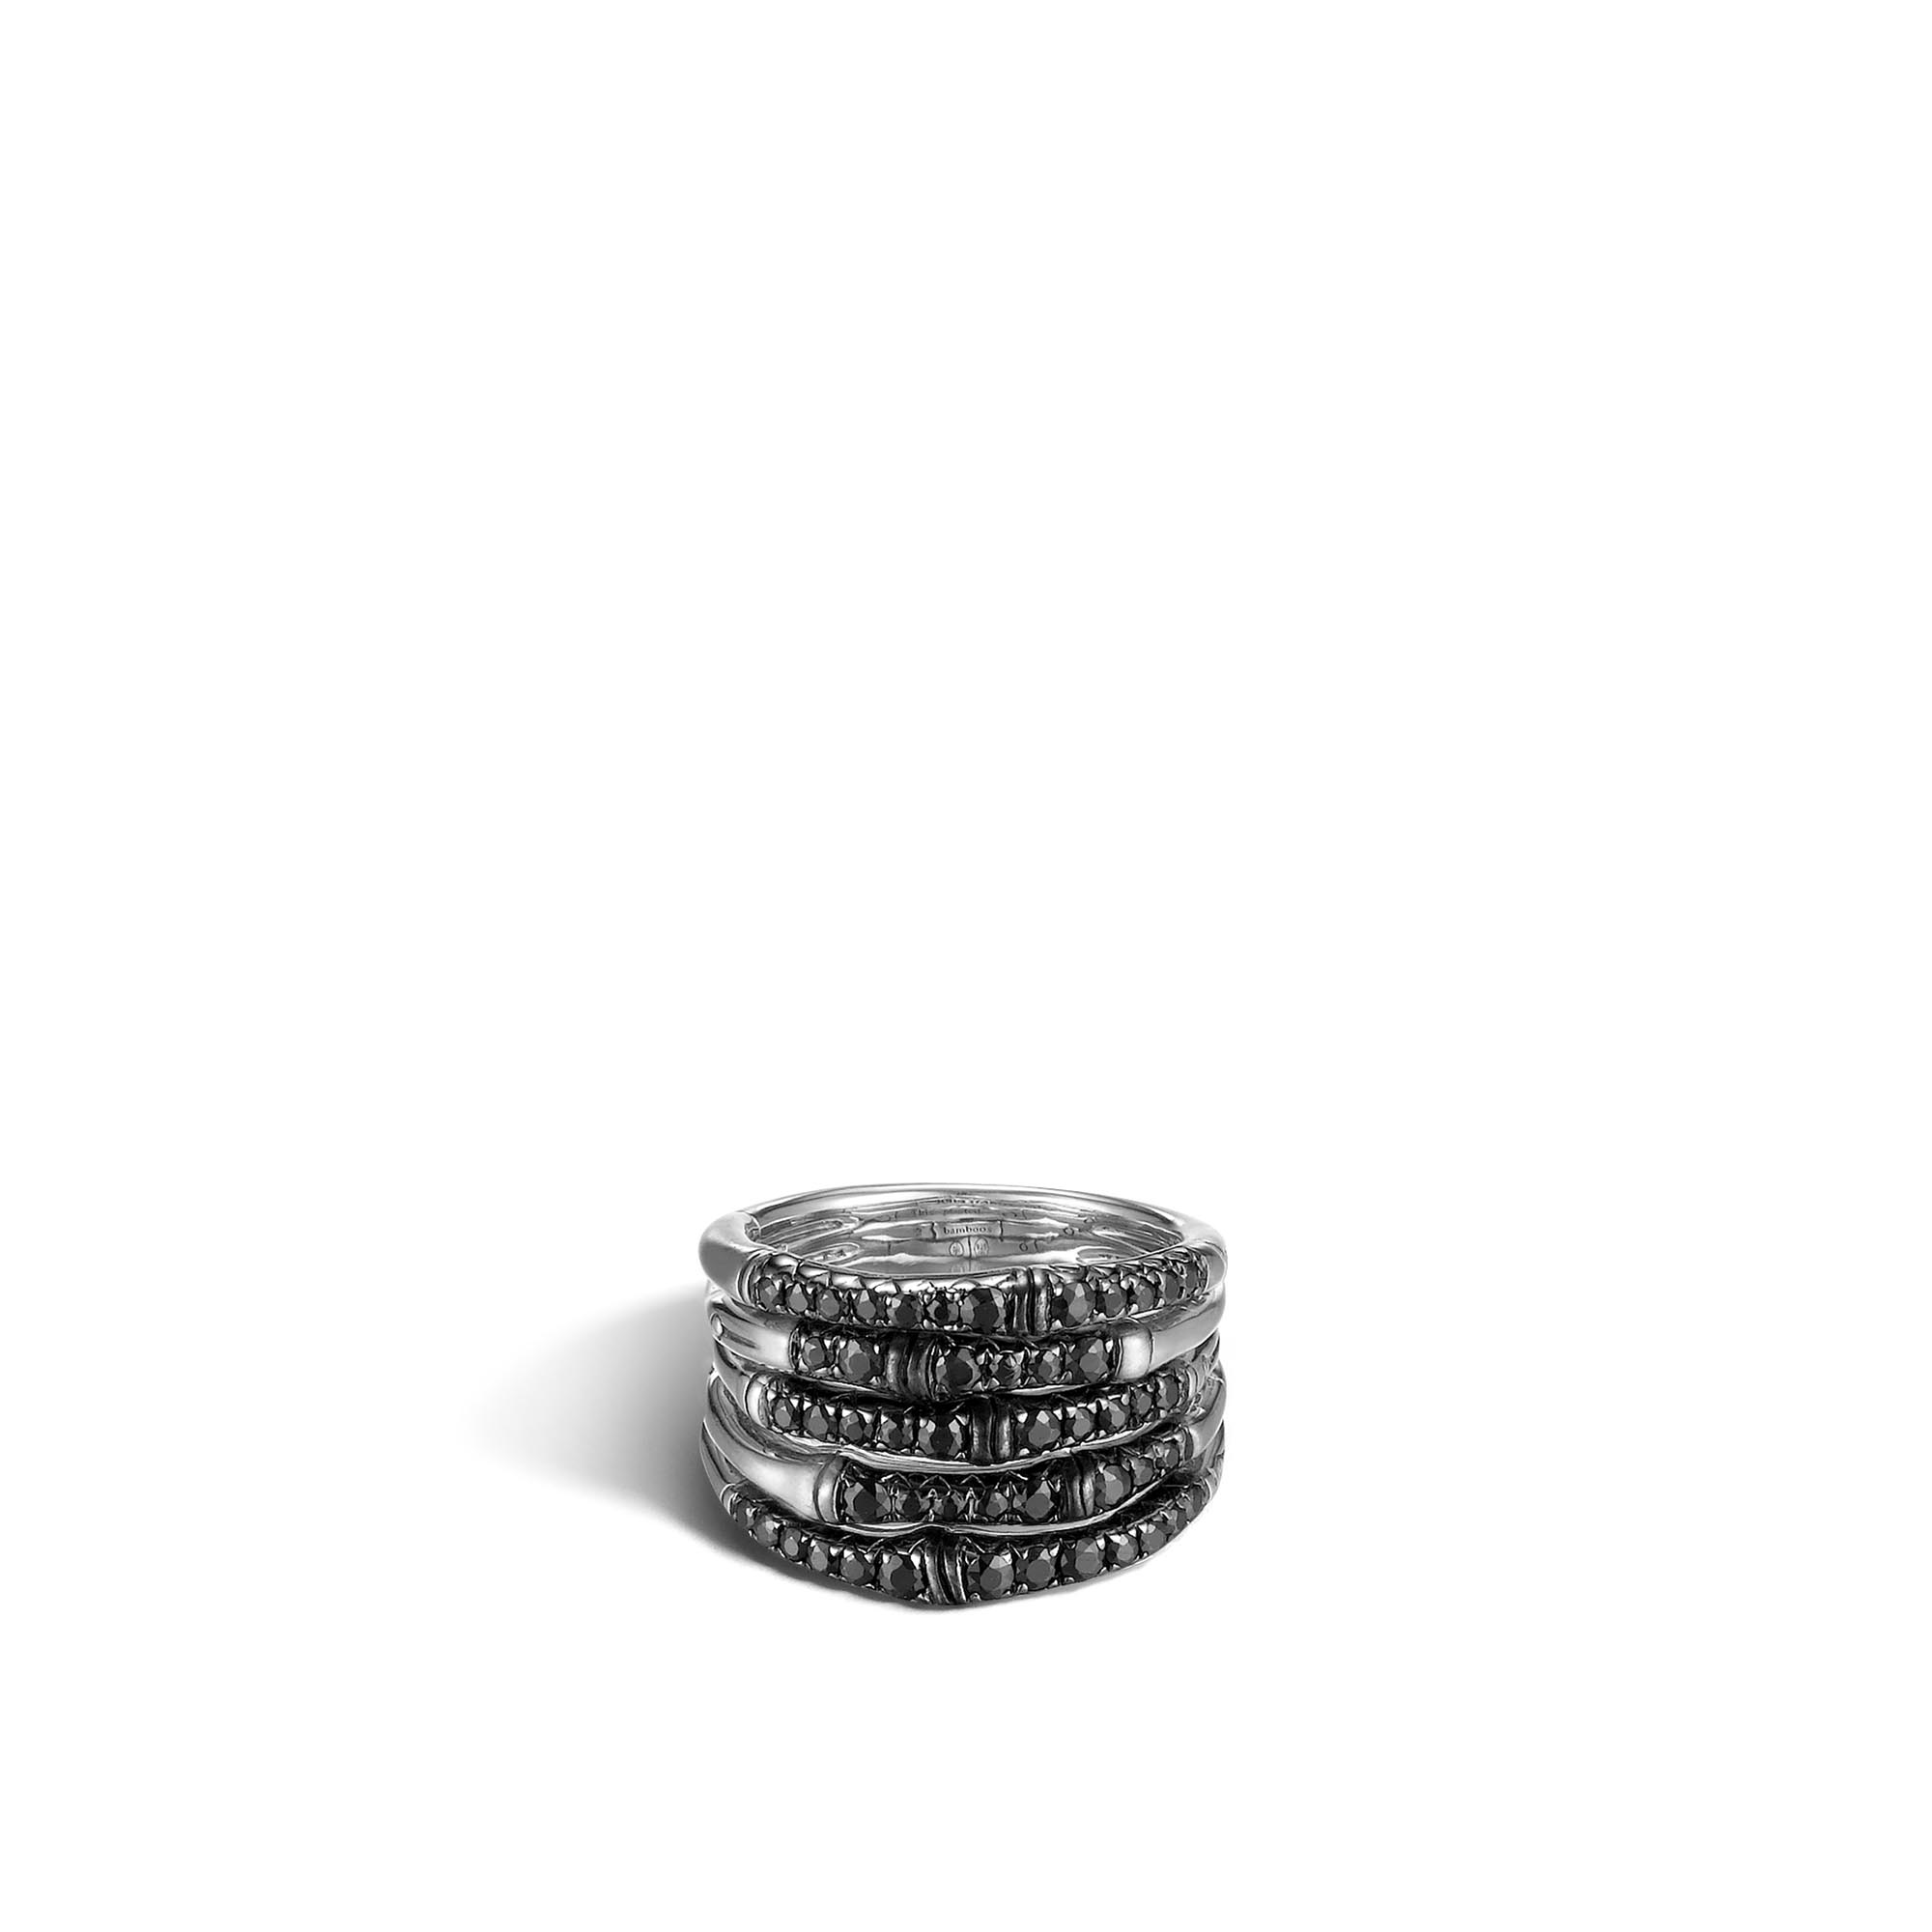 Bamboo Ring in Silver with Gemstone, Black Sapphire, large